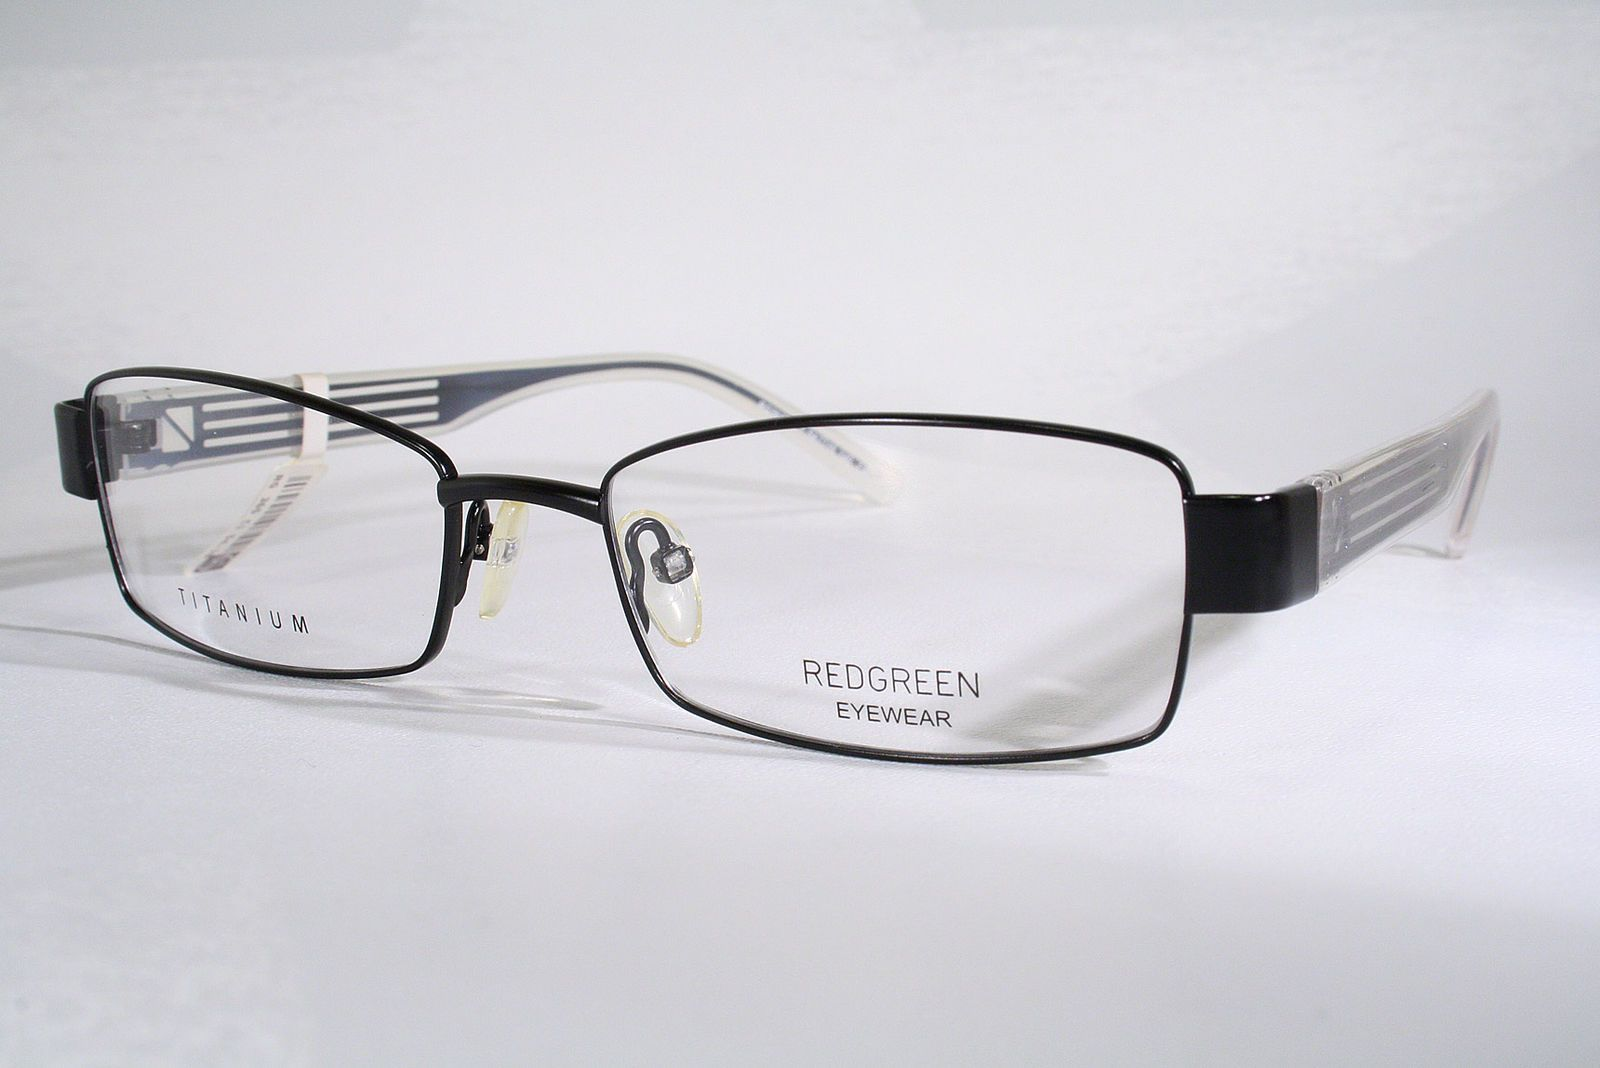 942b59805694 REDGREEN New TITANIUM Antiallergenic Danish Design Eyeglass Frames Men s  Large